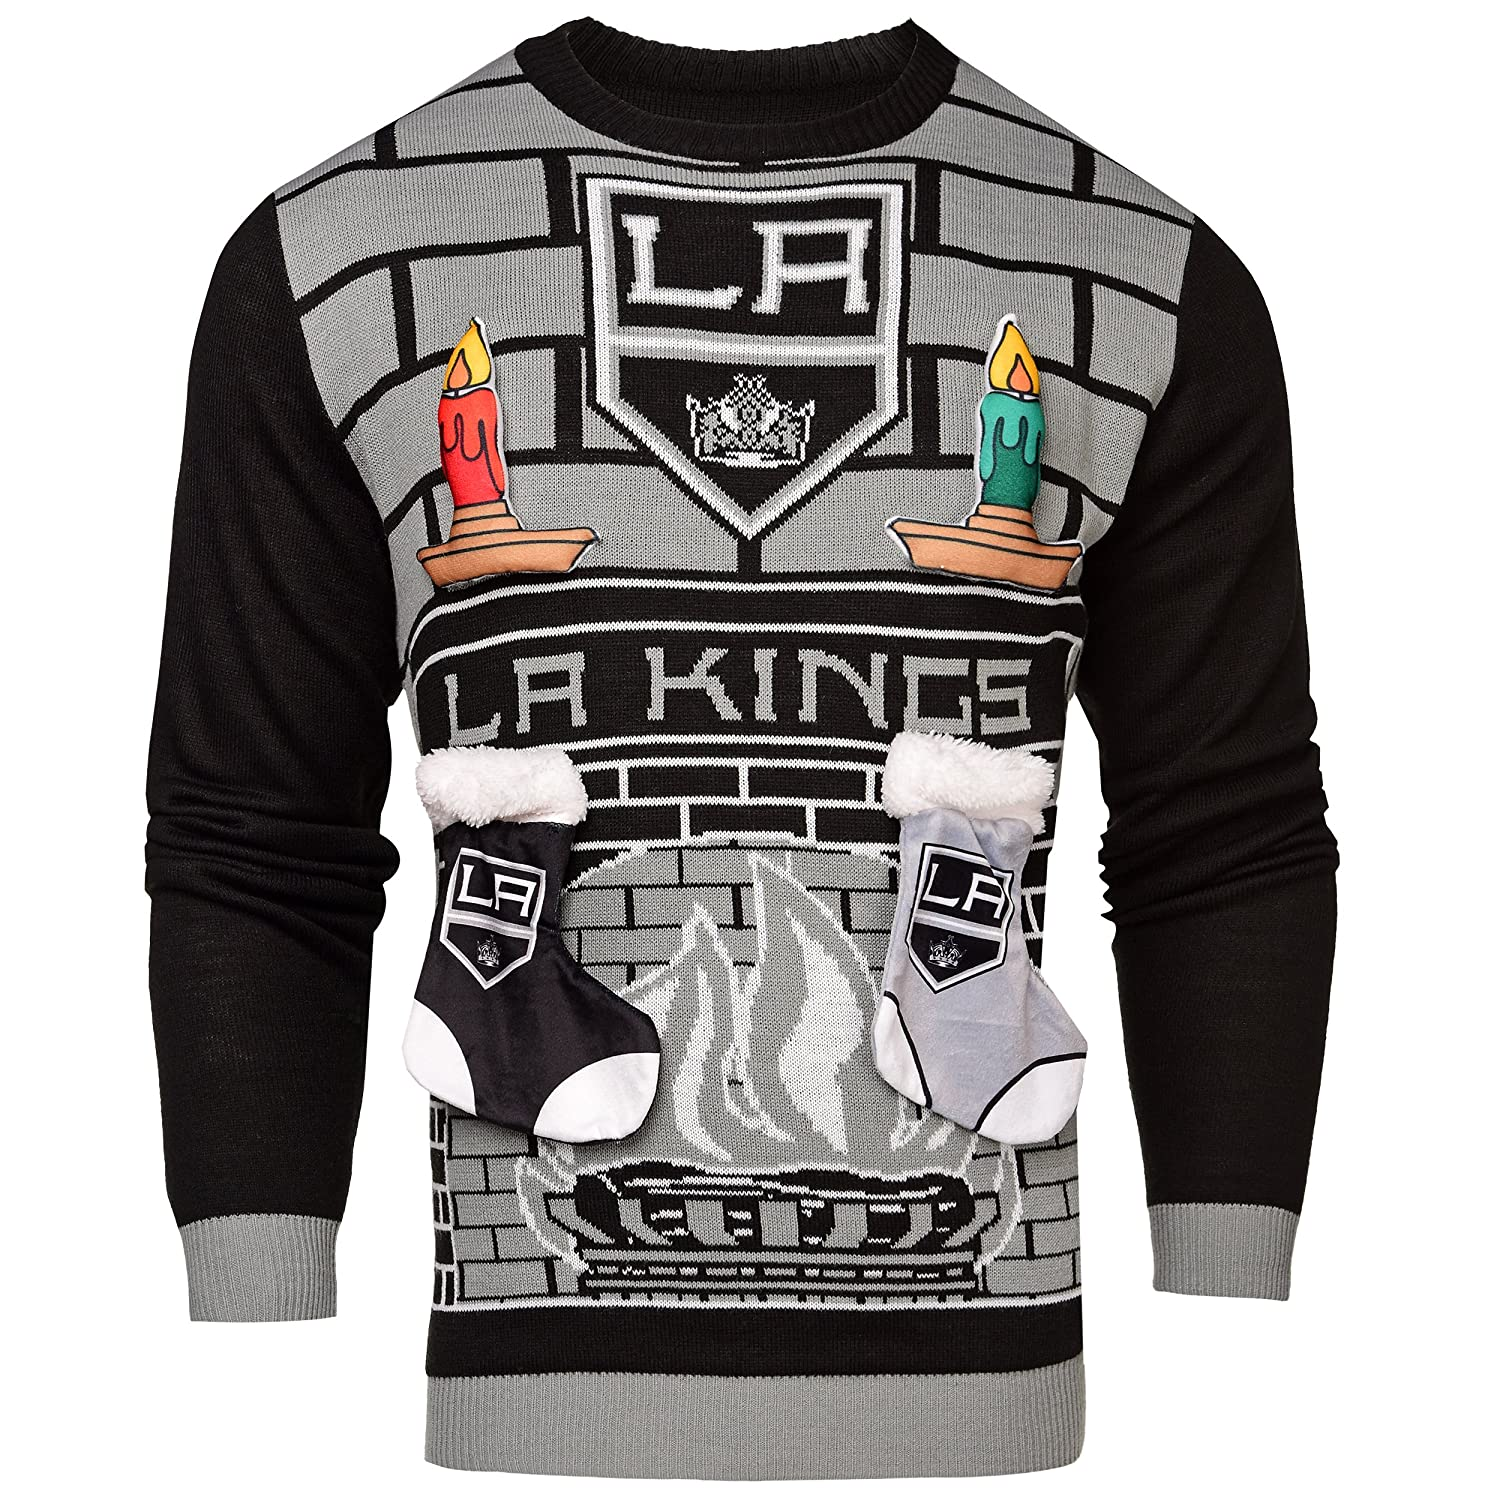 cheap for discount d9f9c 0a6b3 Amazon.com : Los Angeles Kings Ugly 3D Sweater - Mens Small ...